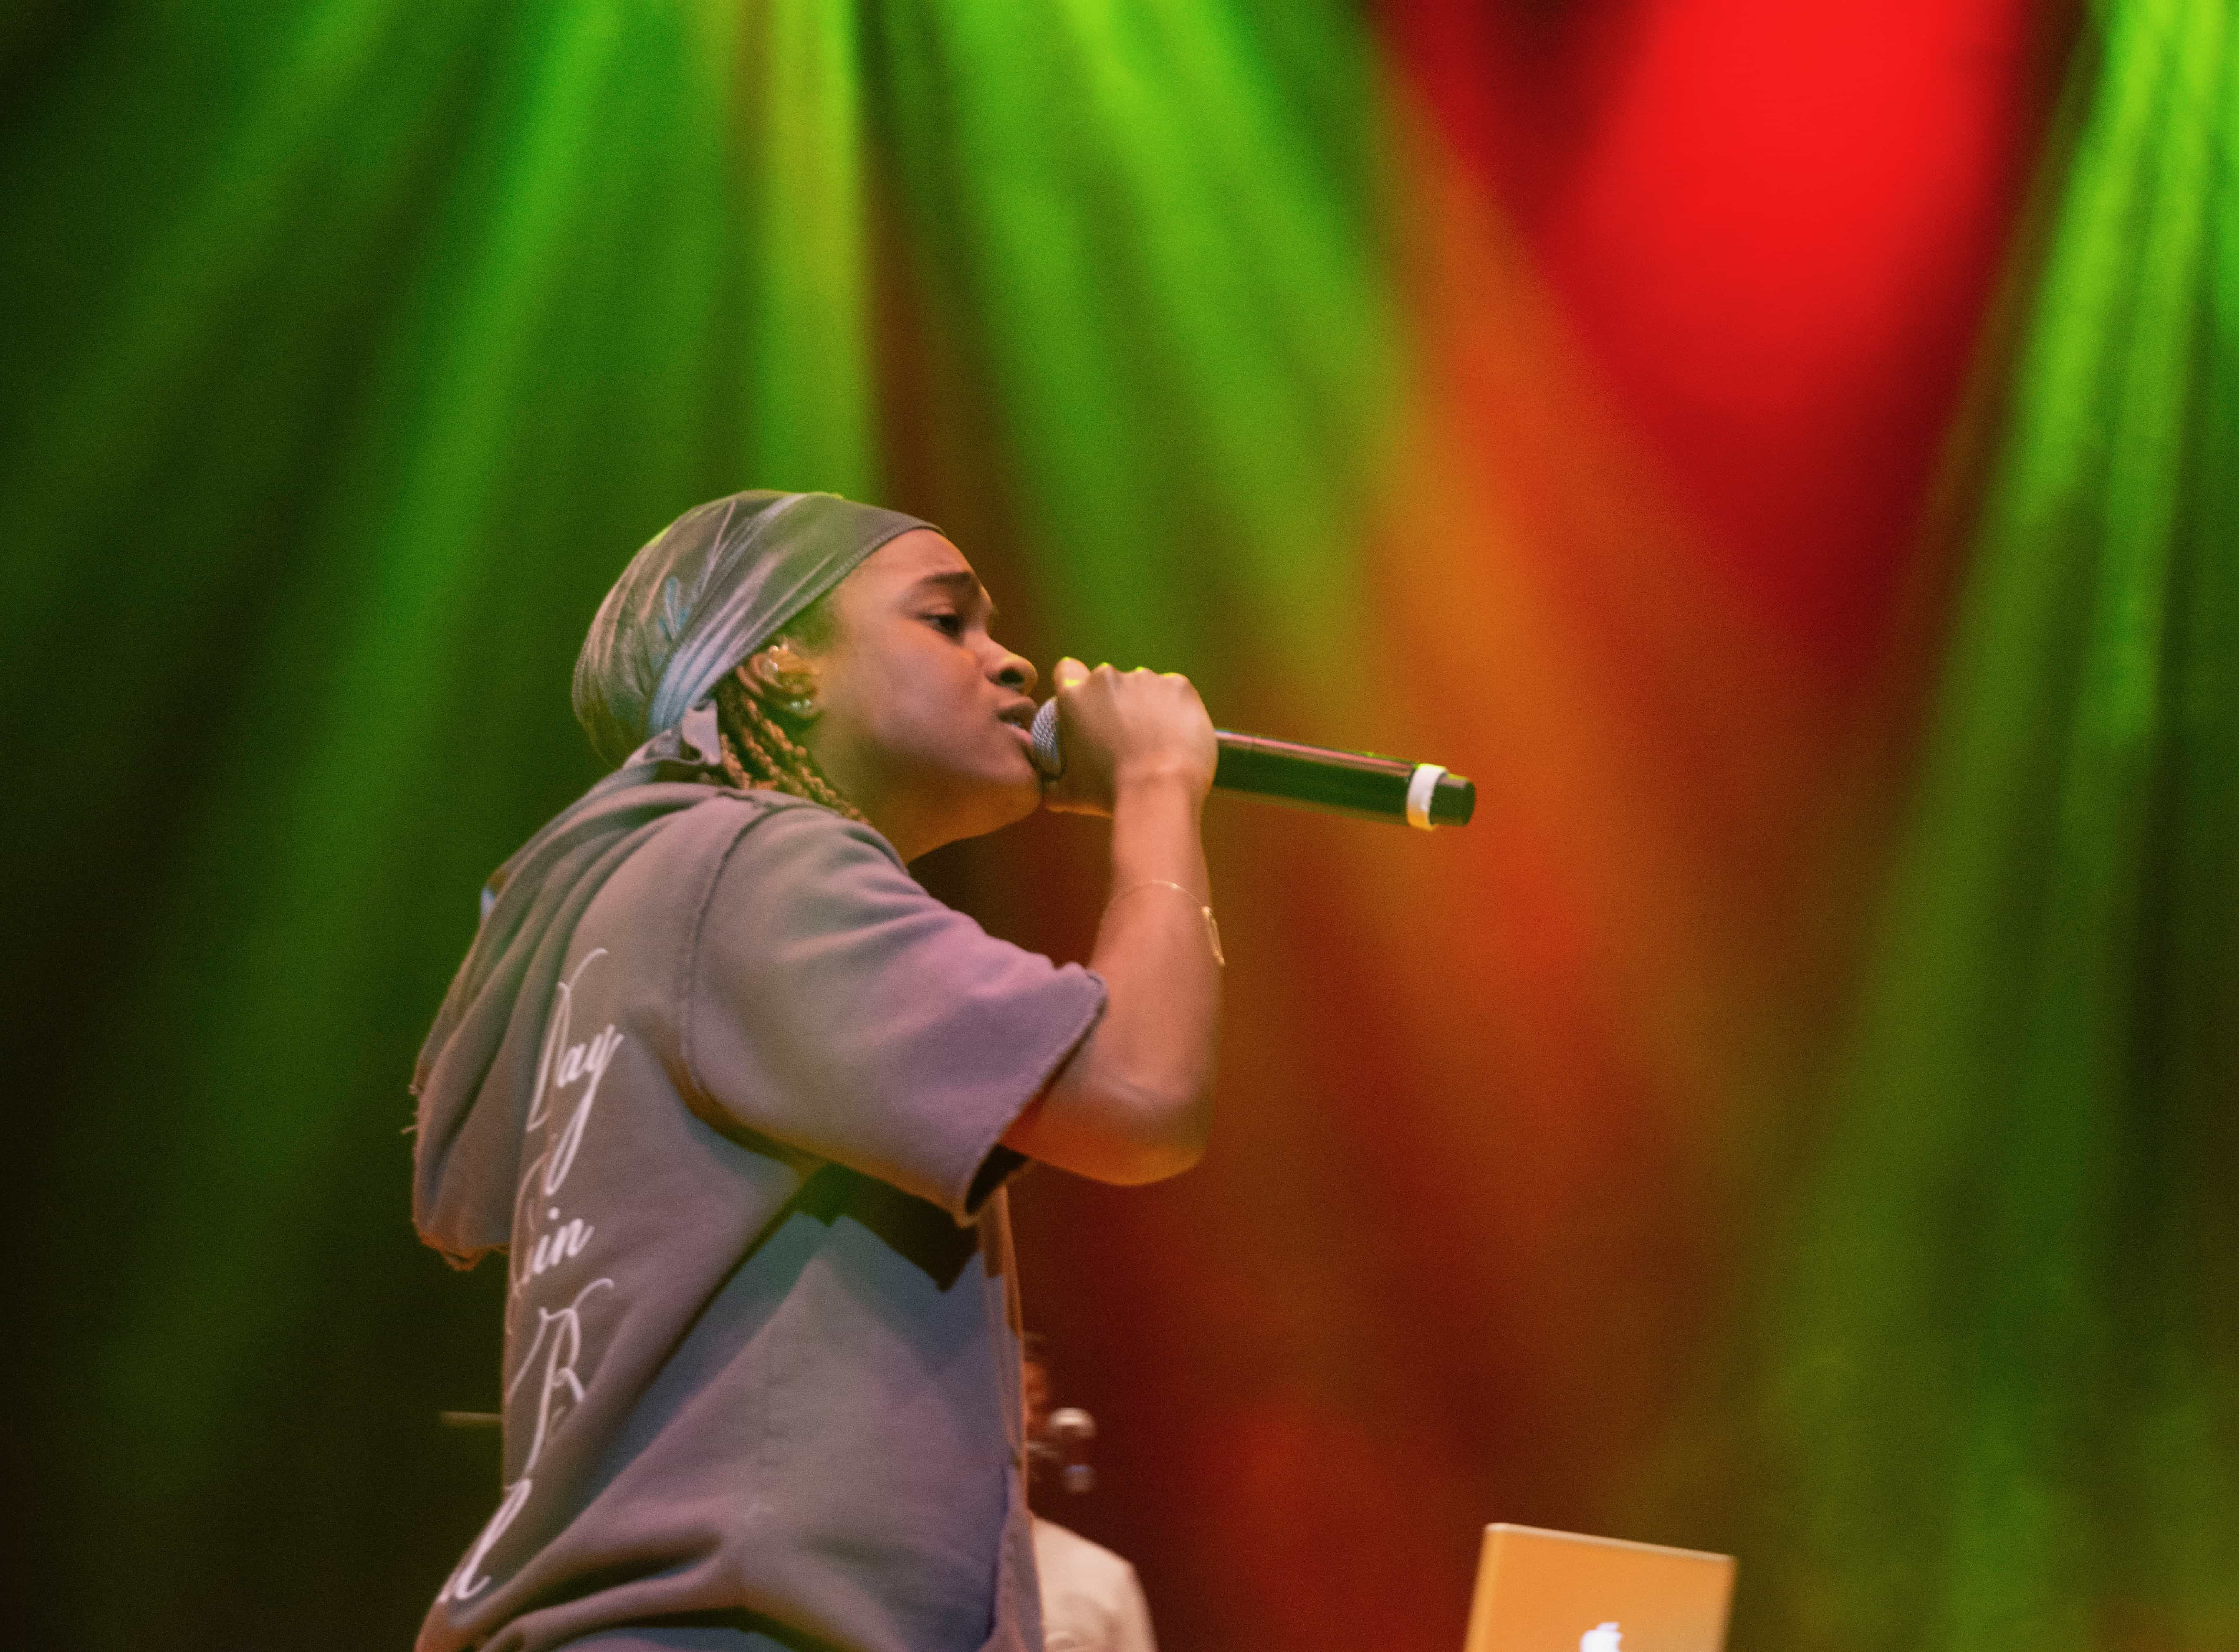 Koffee energizes the crowd under the warm stage lights